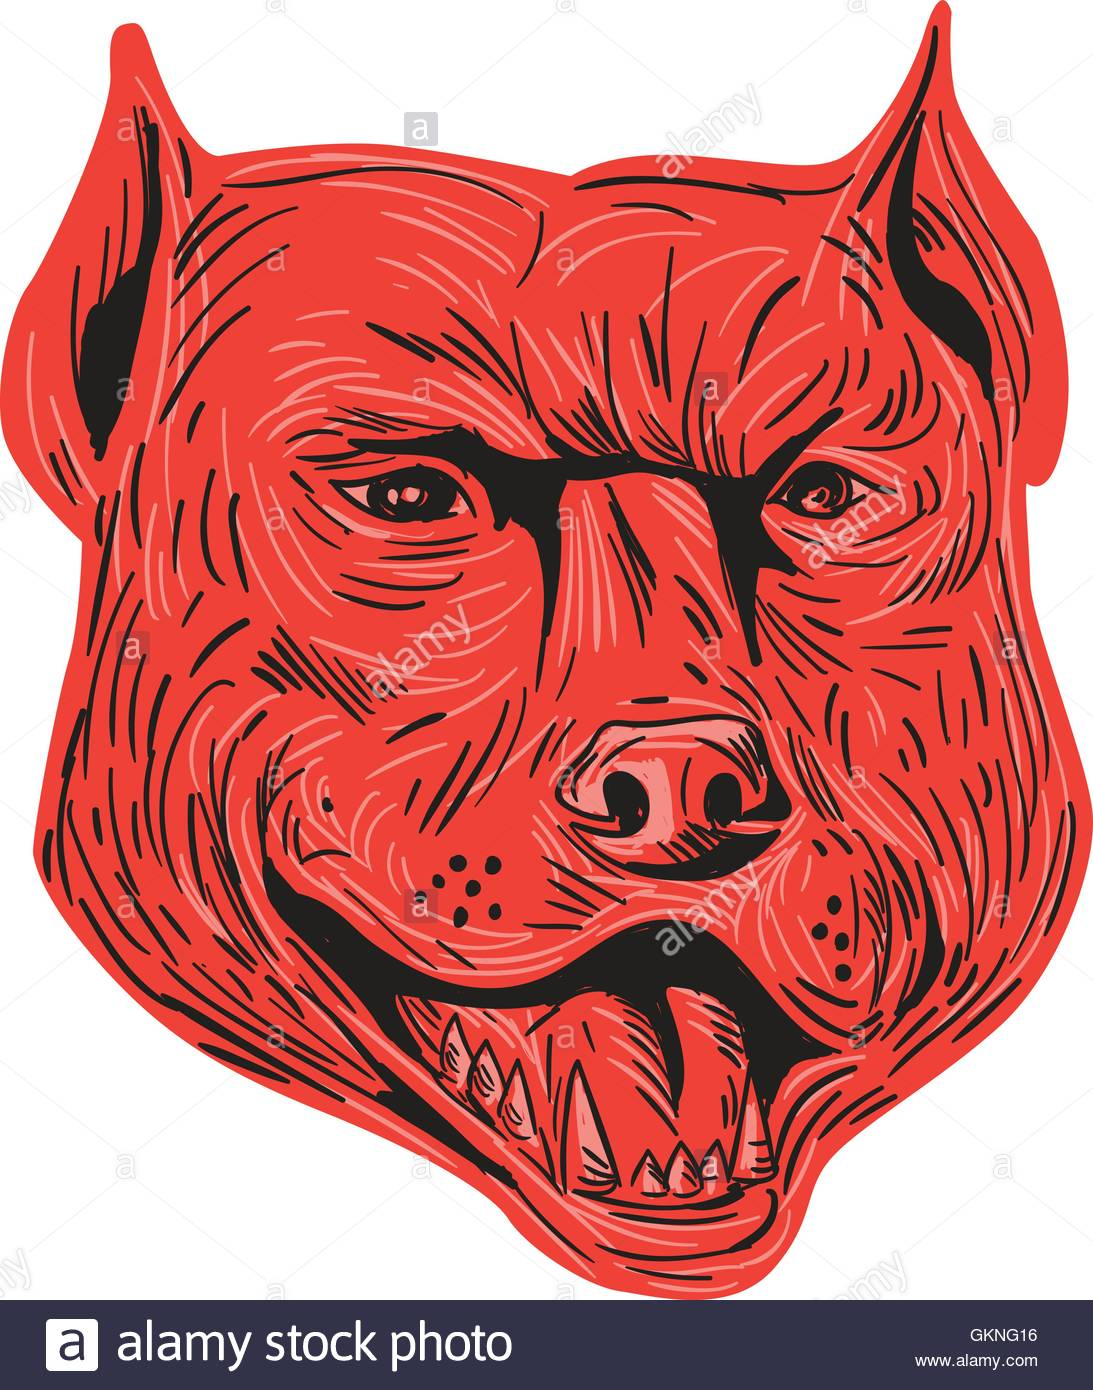 1093x1390 Drawing Sketch Style Illustration Of An Angry Pitbull Dog Mongrel